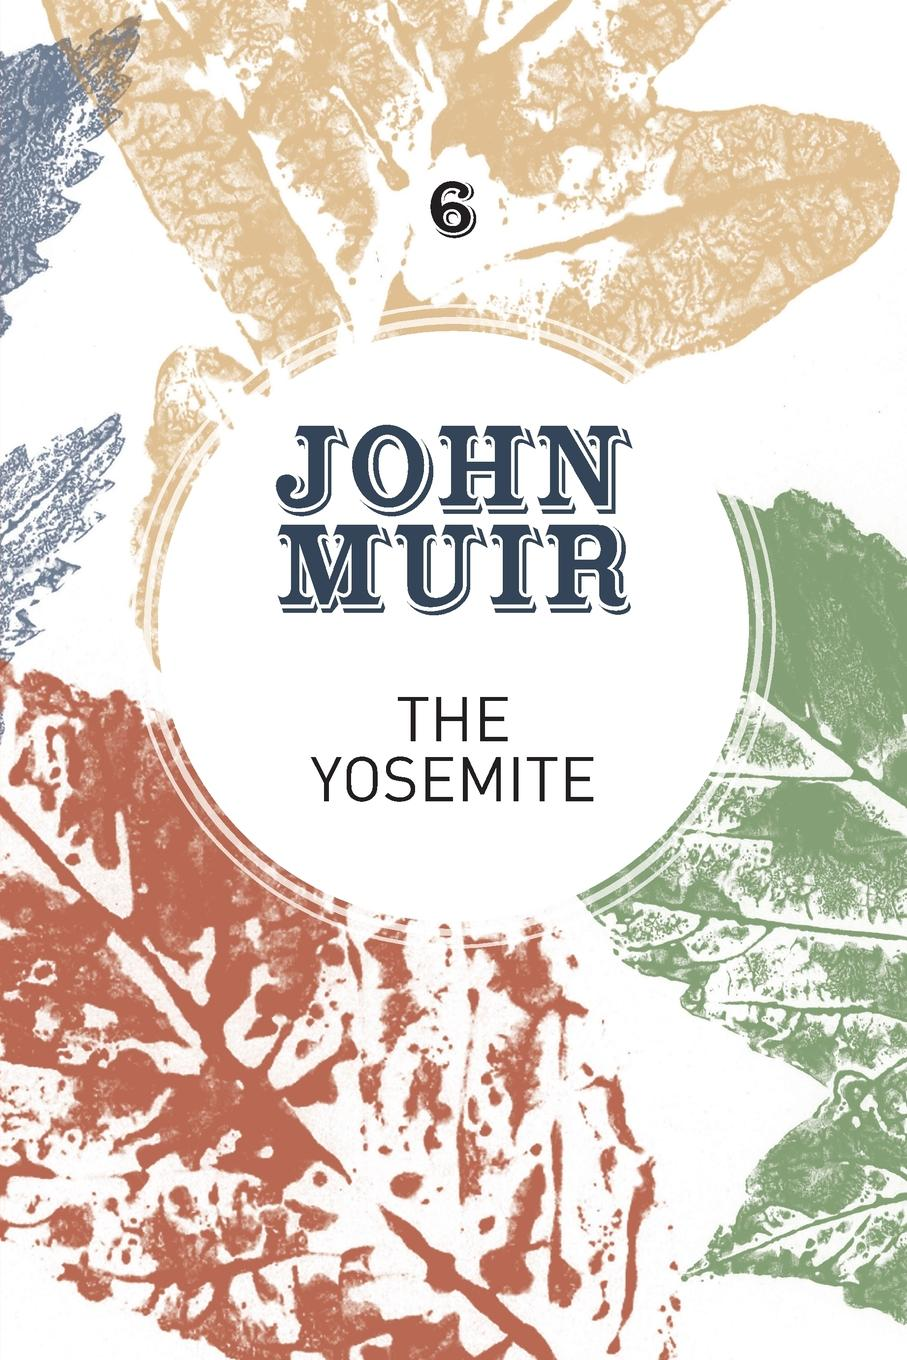 John Muir, Terry Gifford The Yosemite. John Muir.s quest to preserve the wilderness bellett john gifford the patriarchs